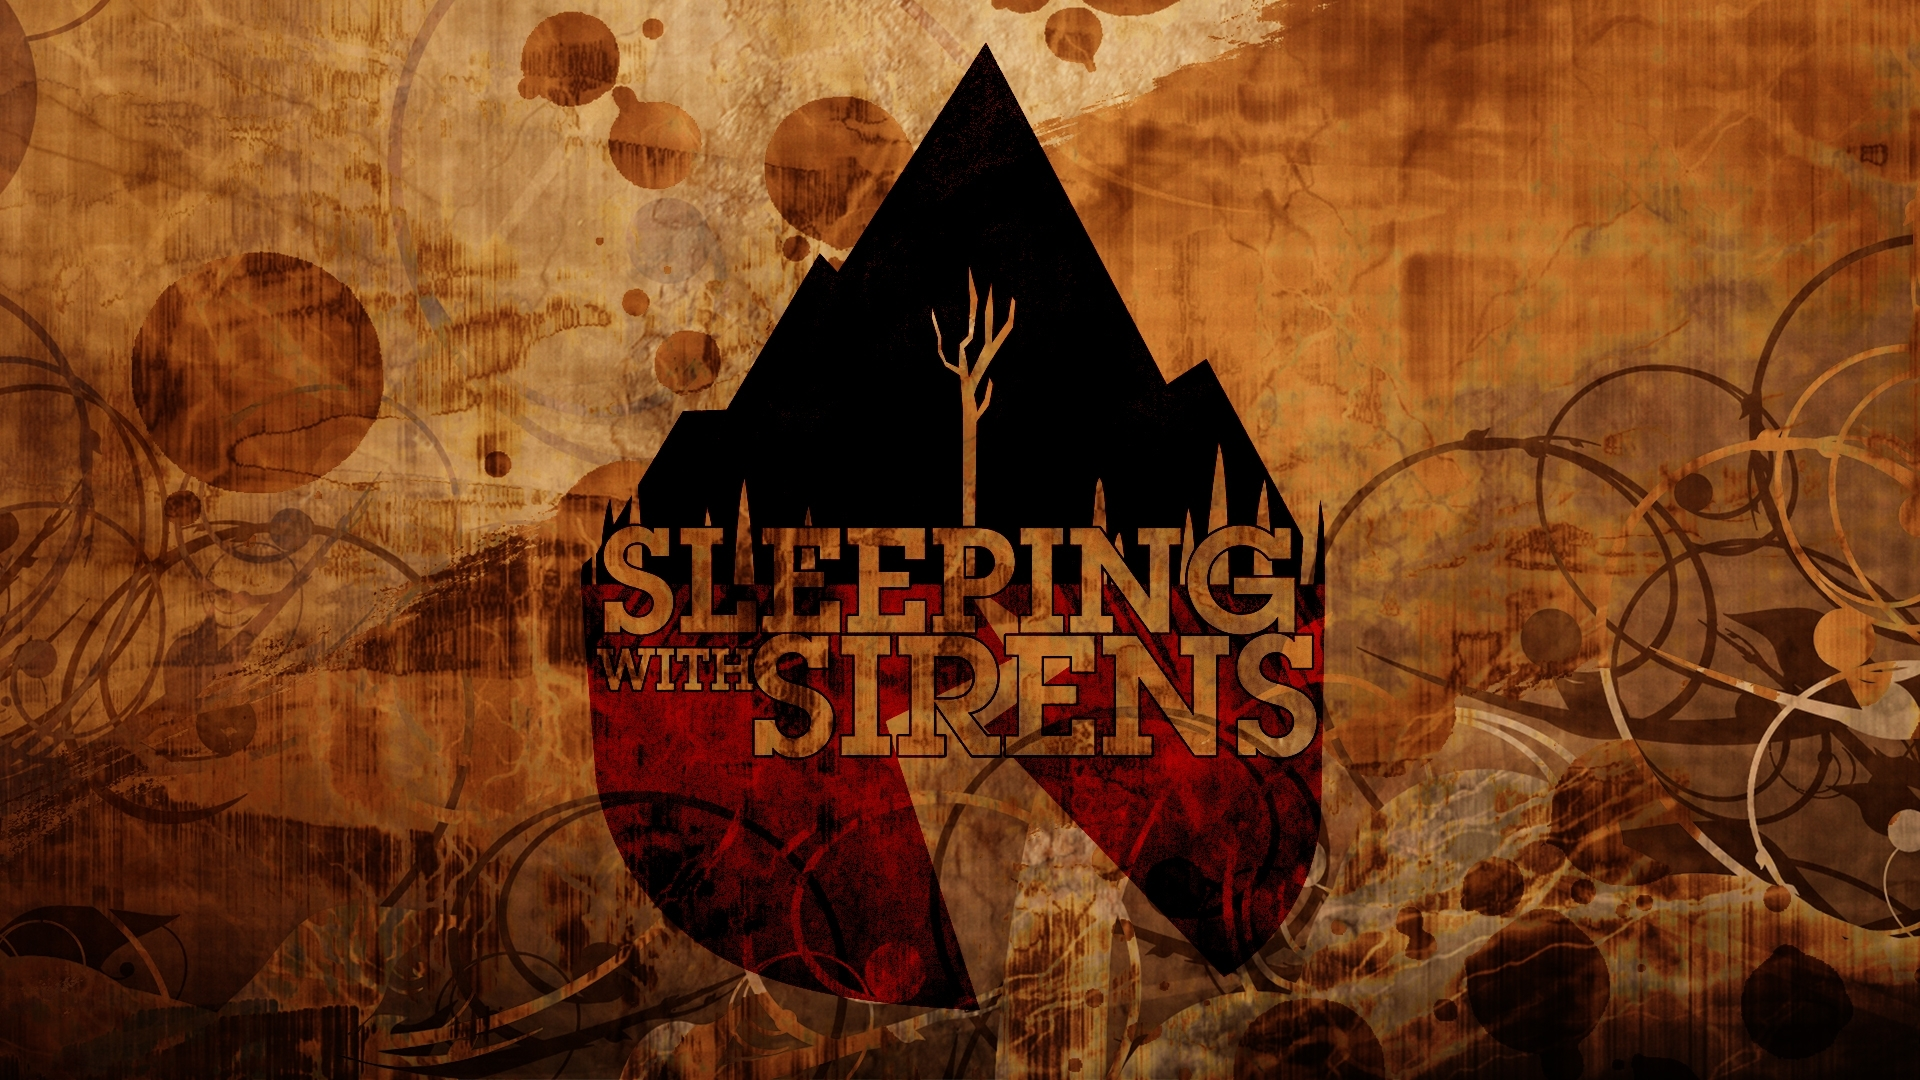 sleeping with sirens full hd wallpaper and background image